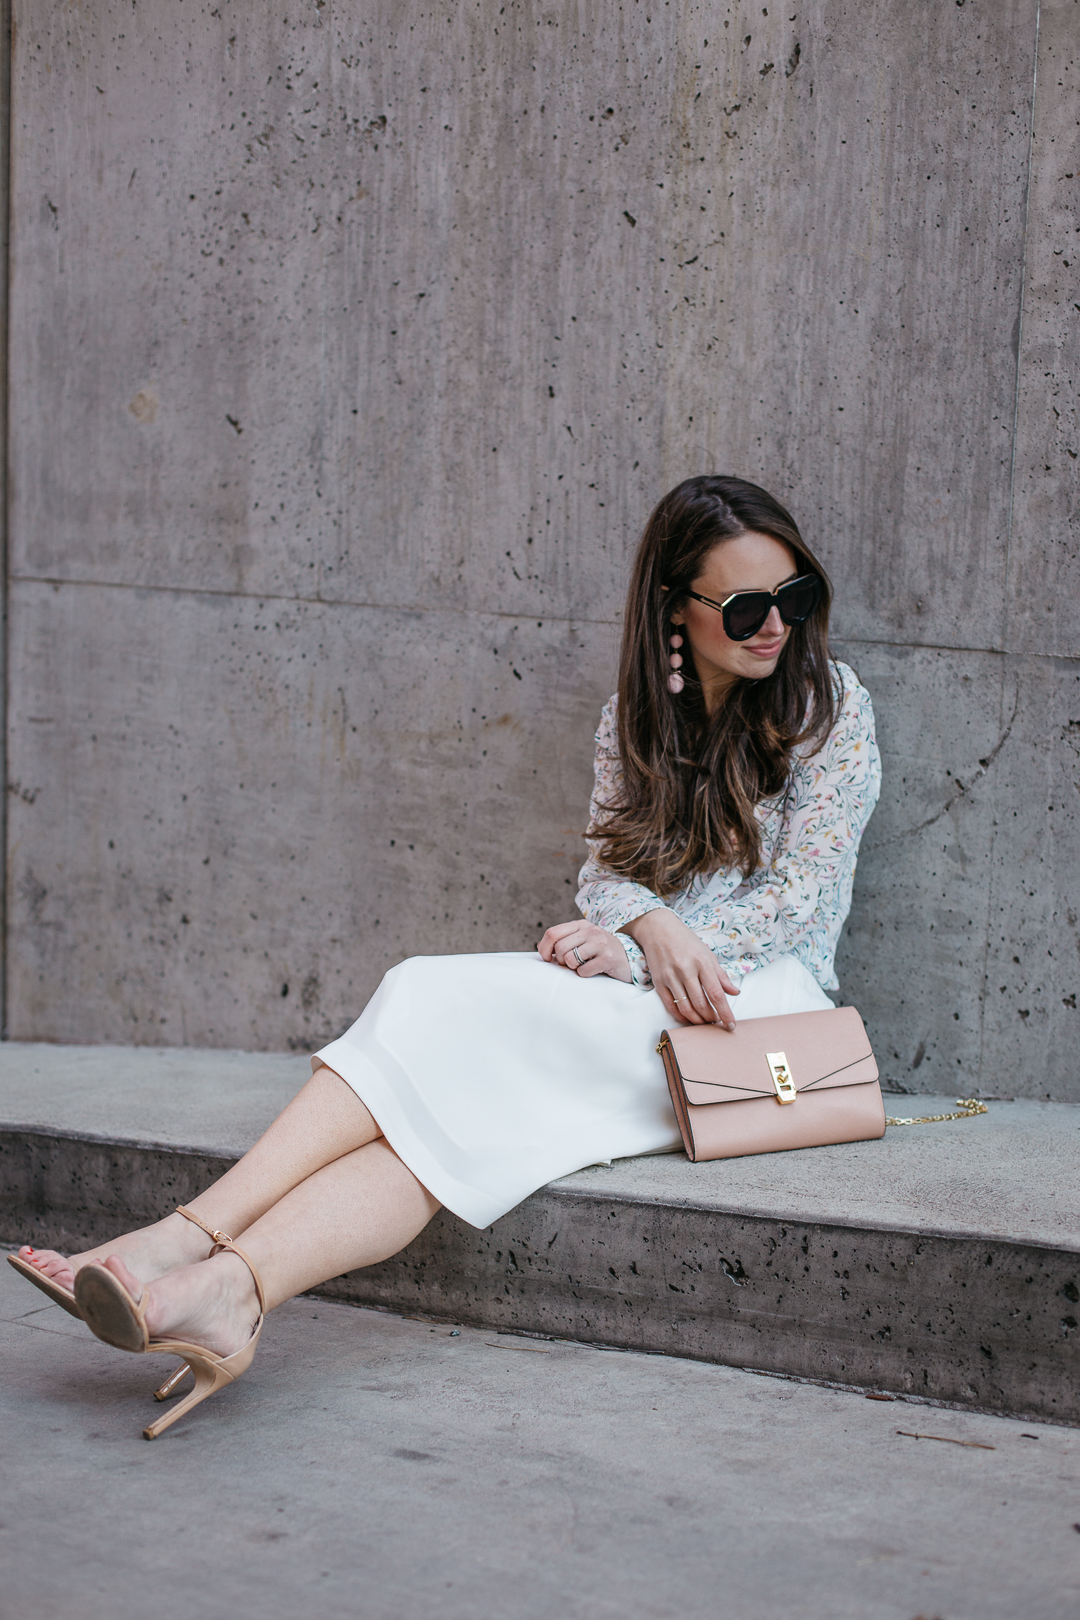 Wearing some of my favorite pieces from Henri Bendel and Uniqlo